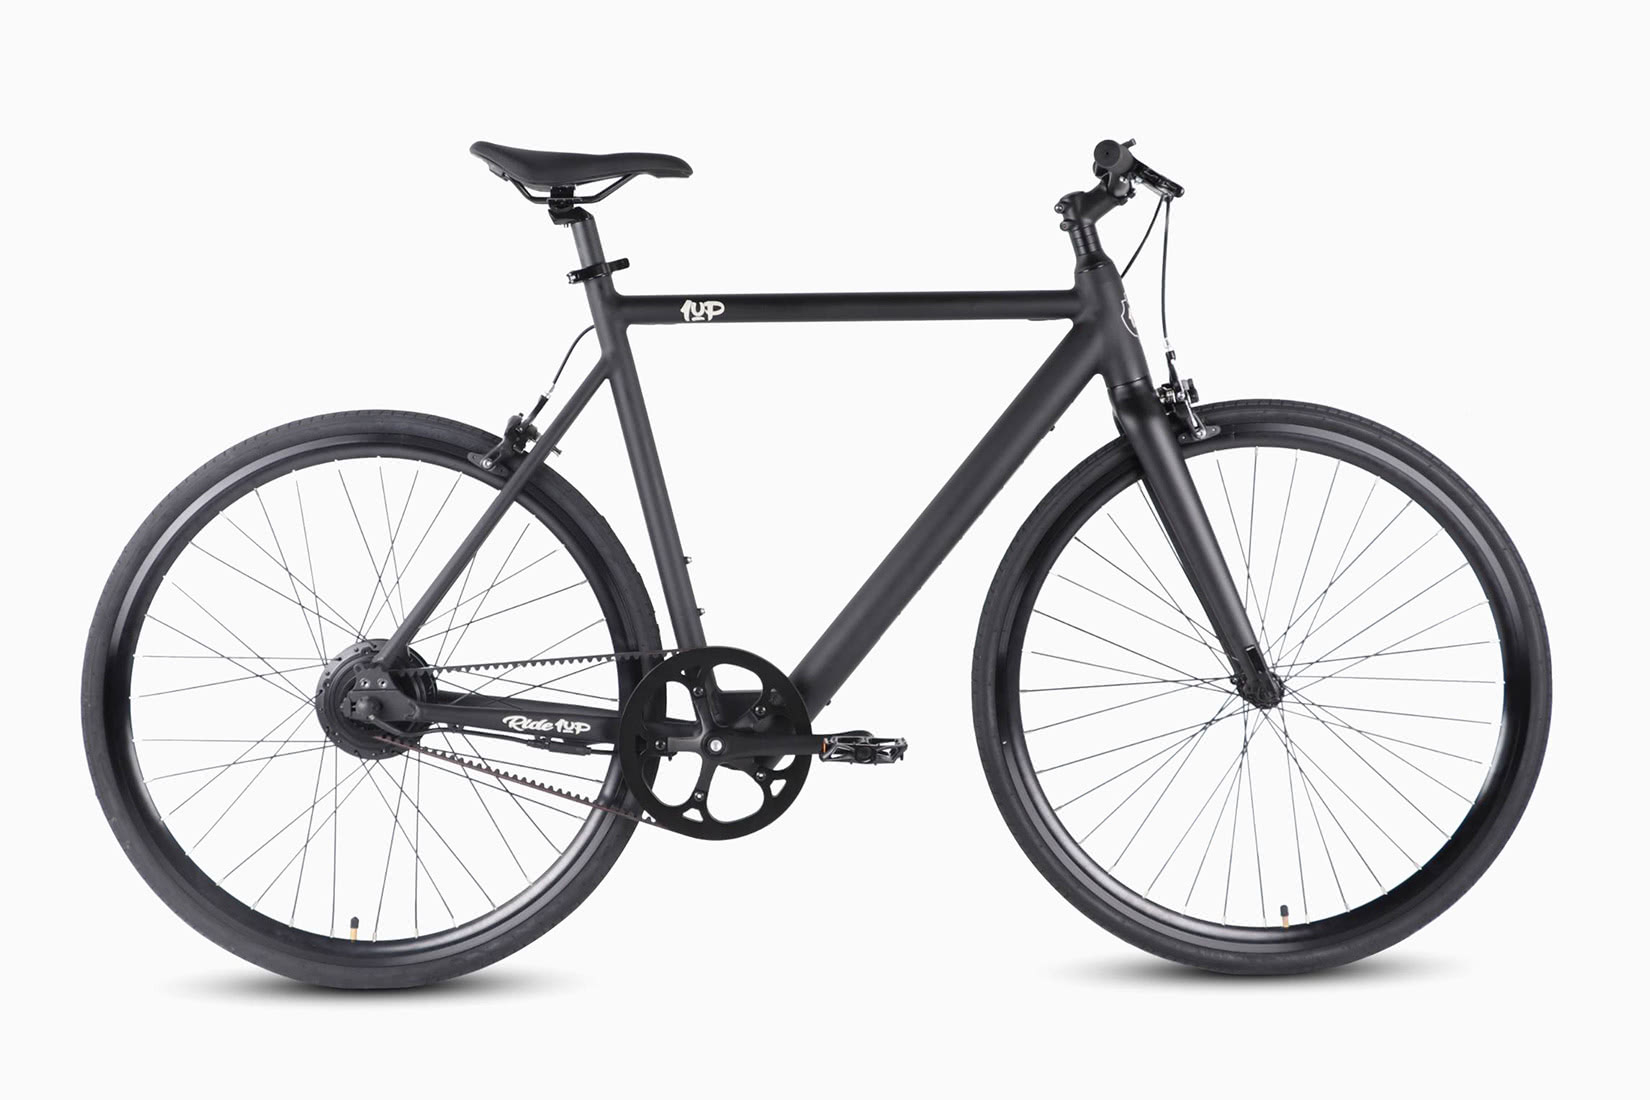 best electric bikes for money ride1up roadster review - Luxe Digital